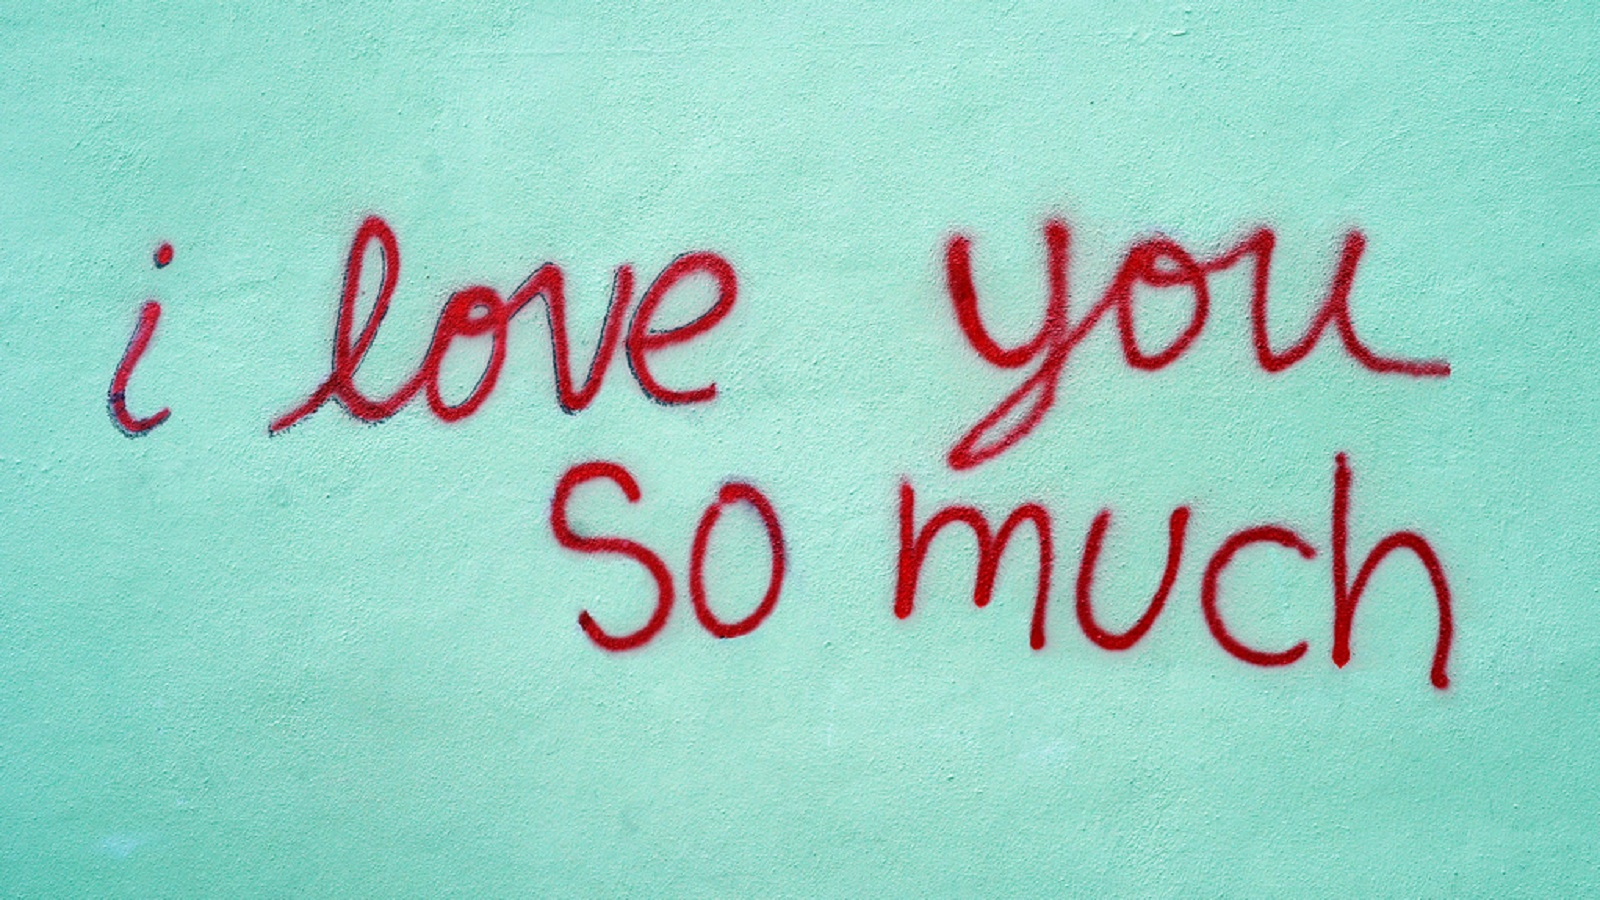 Austin Romance Offers - I love you so much